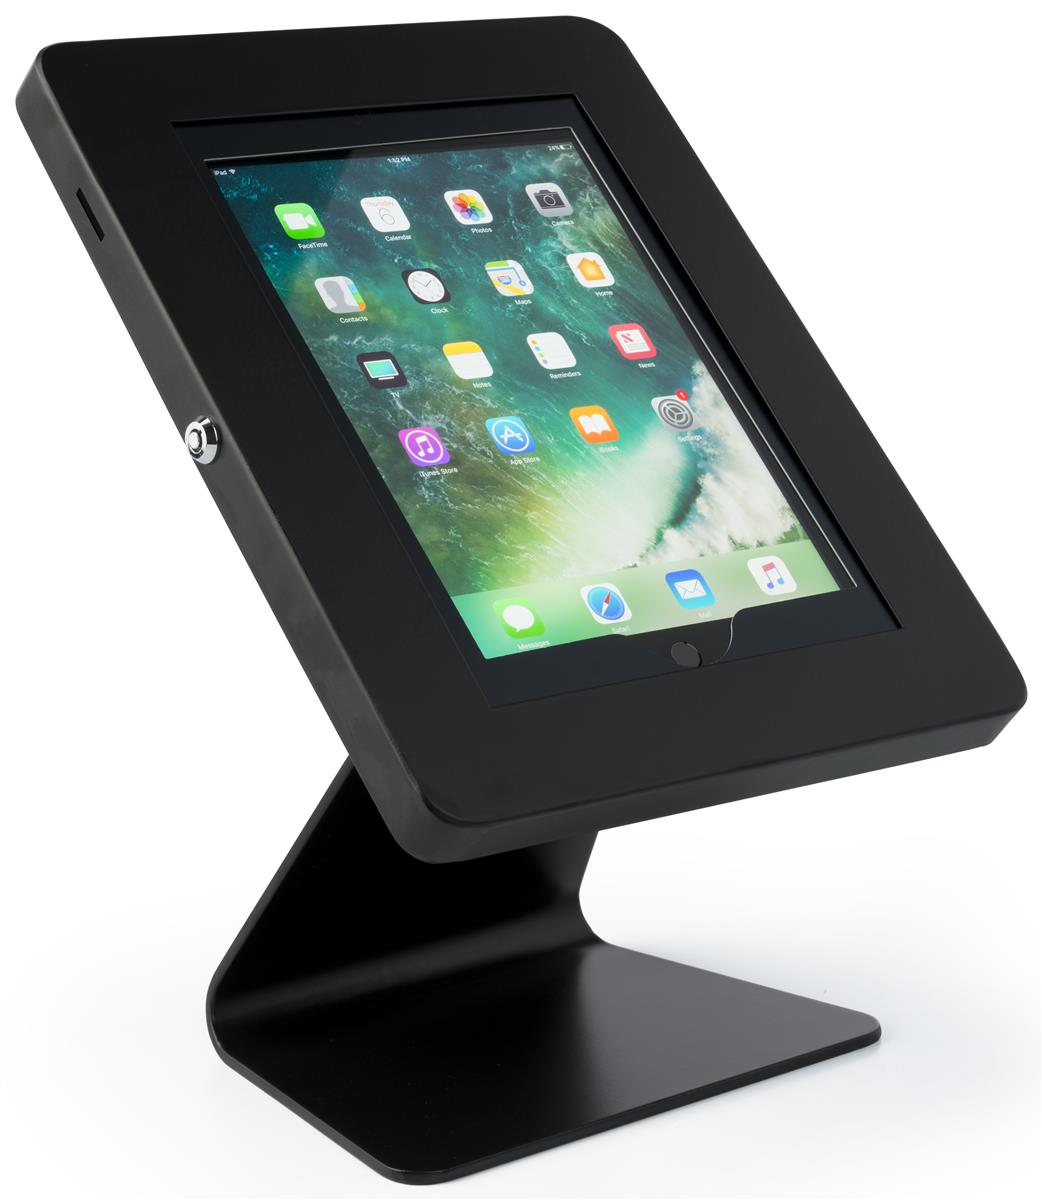 Countertop Ipad Mount Secure Tablet Enclosure